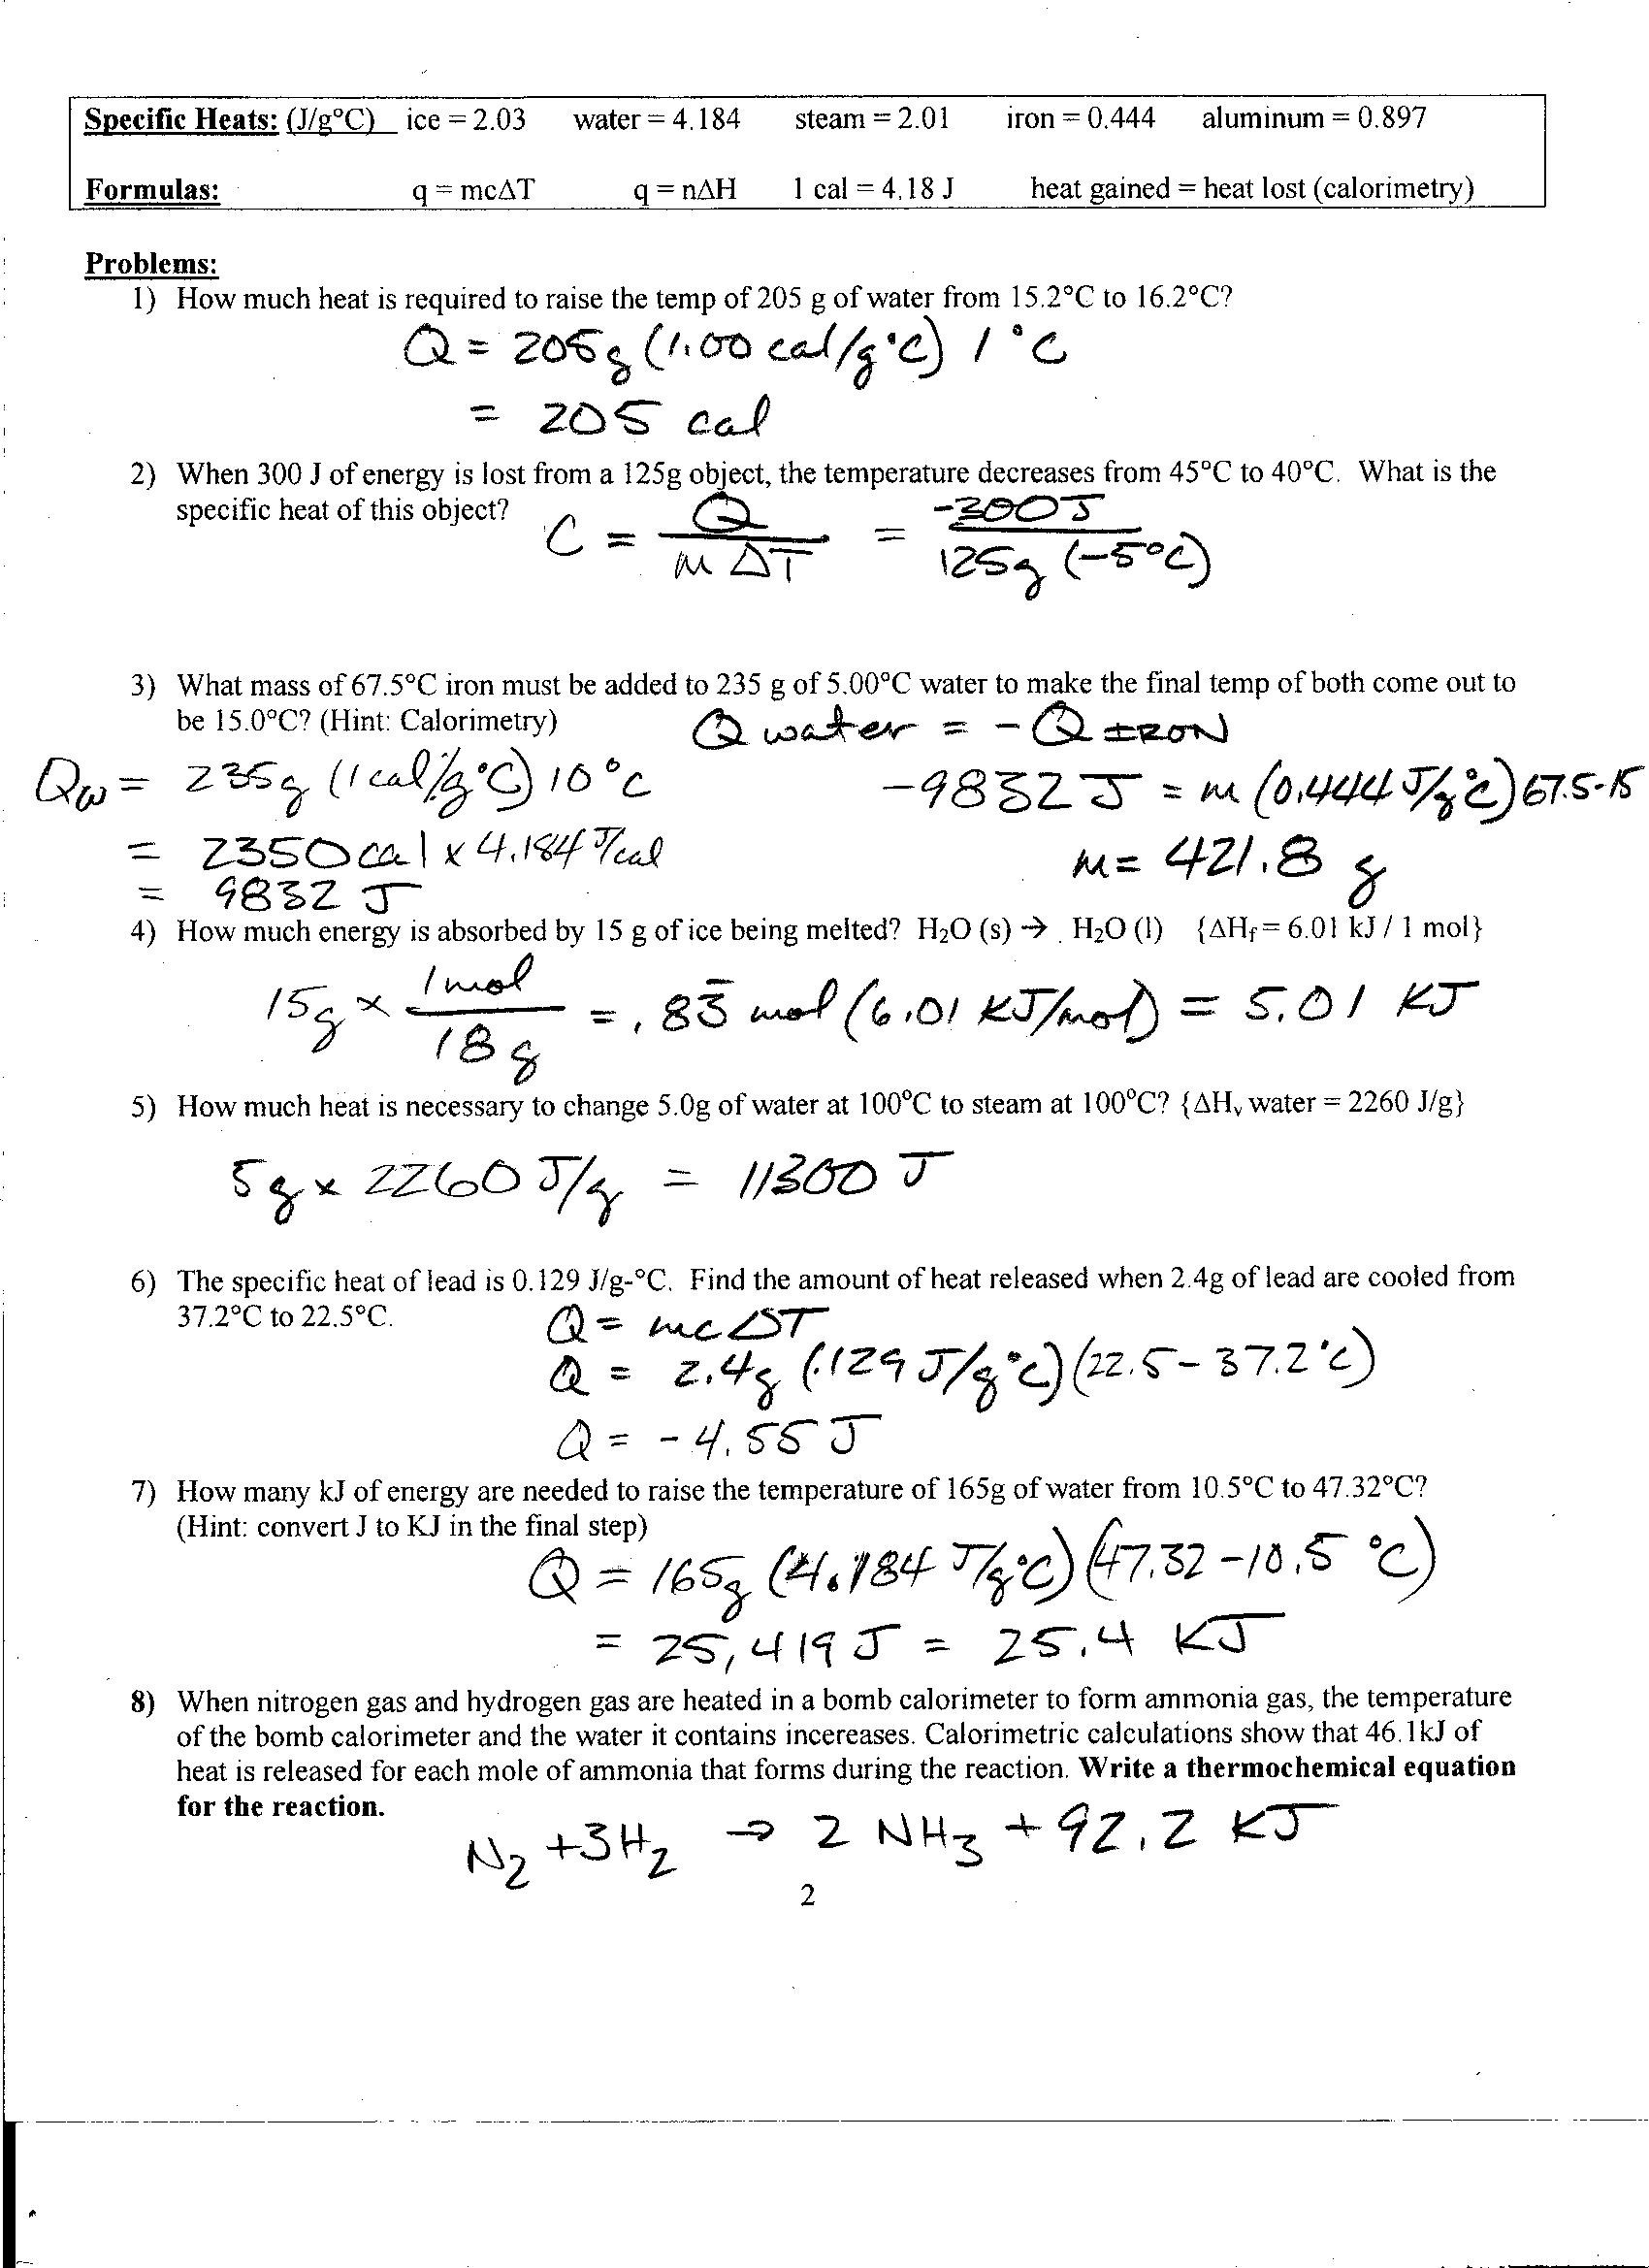 Specific Heat Calculations Worksheet Chemistry Answers